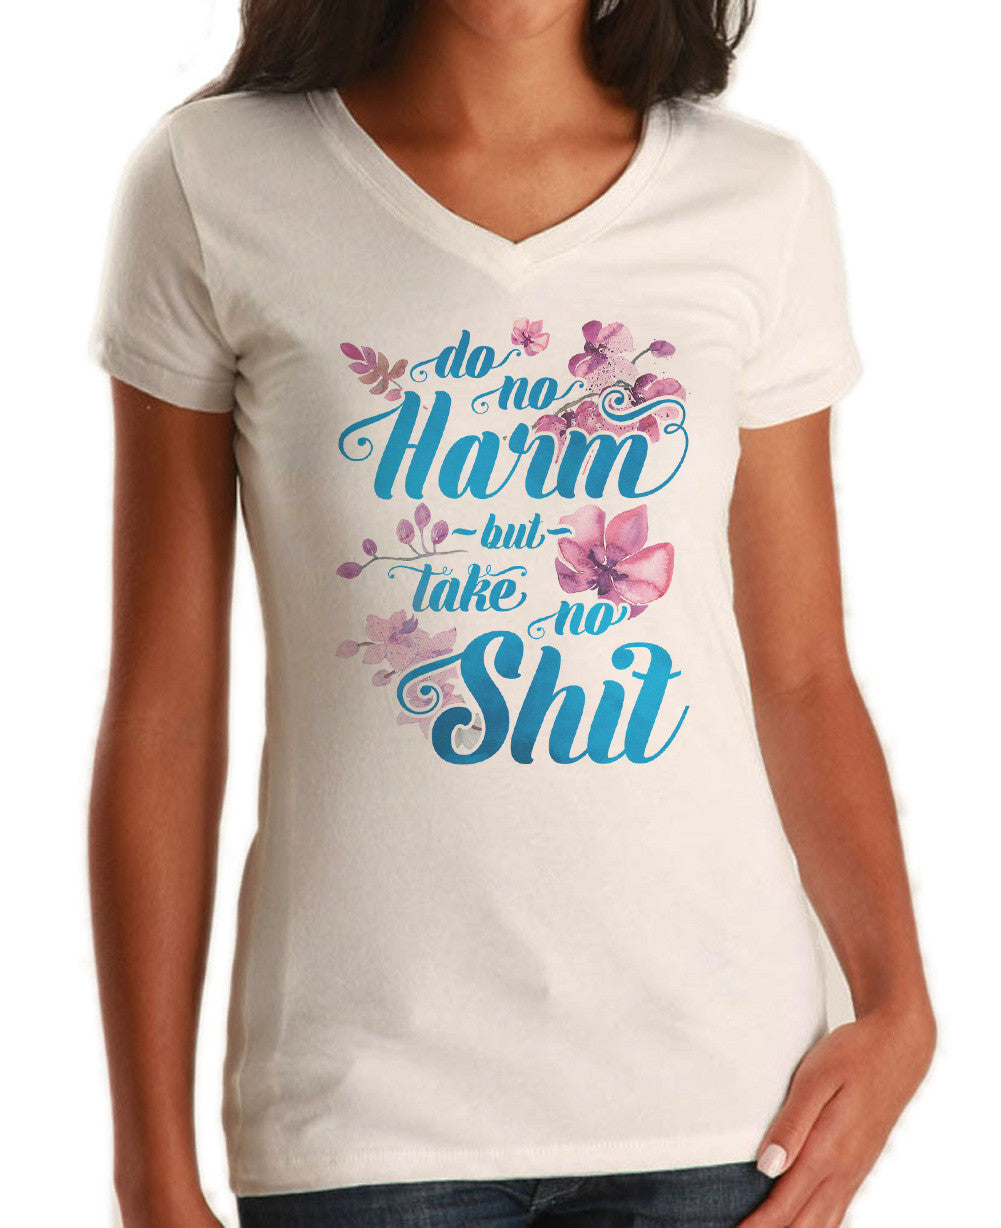 Women's Do No Harm But Take No Shit Vneck T-Shirt - Funny Pastel Floral Boho